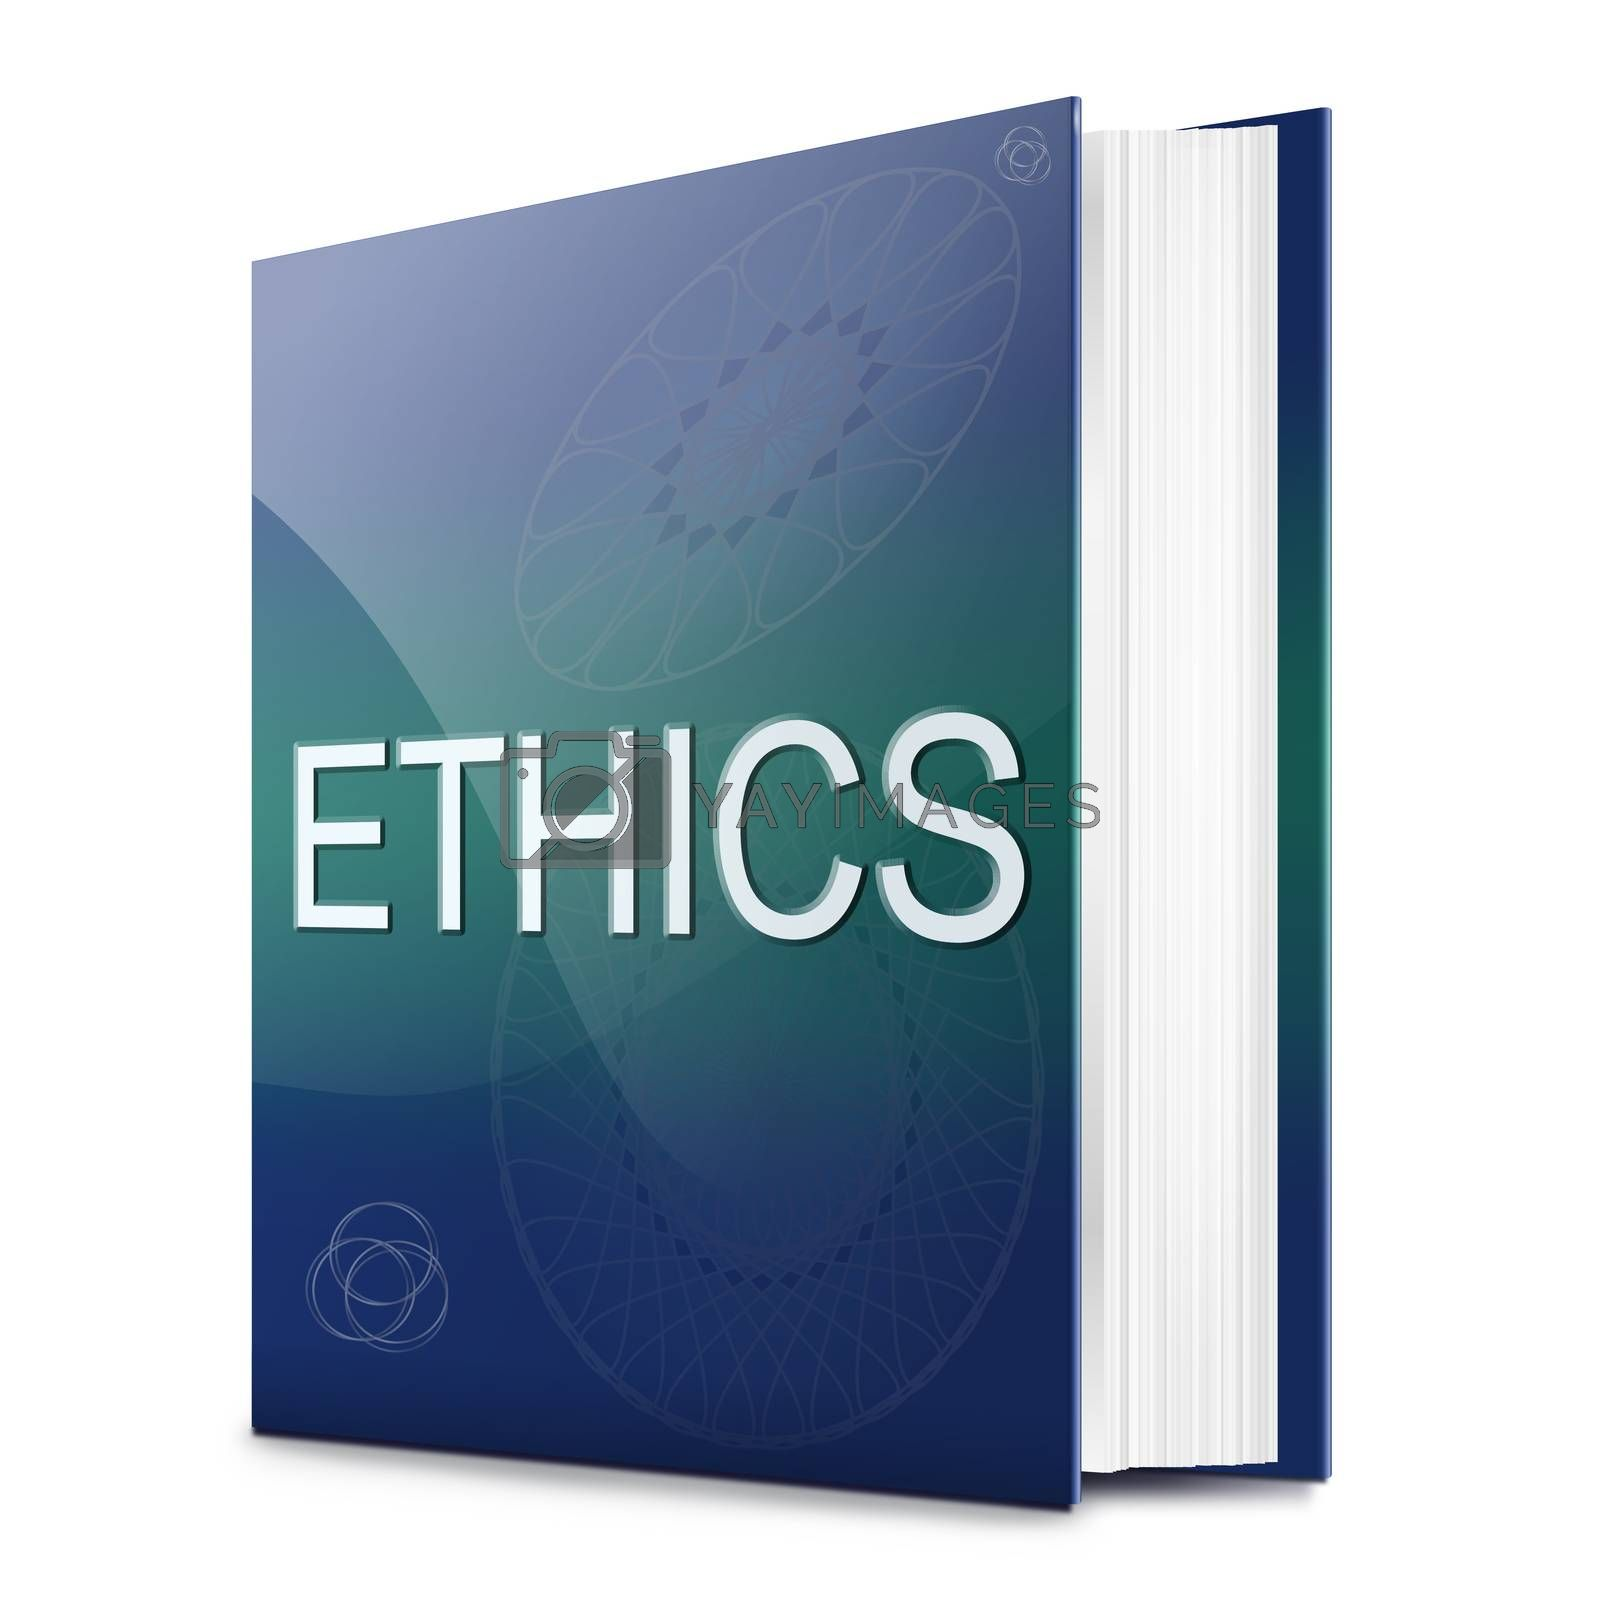 Illustration depicting a text book with an ethics concept title. White background.